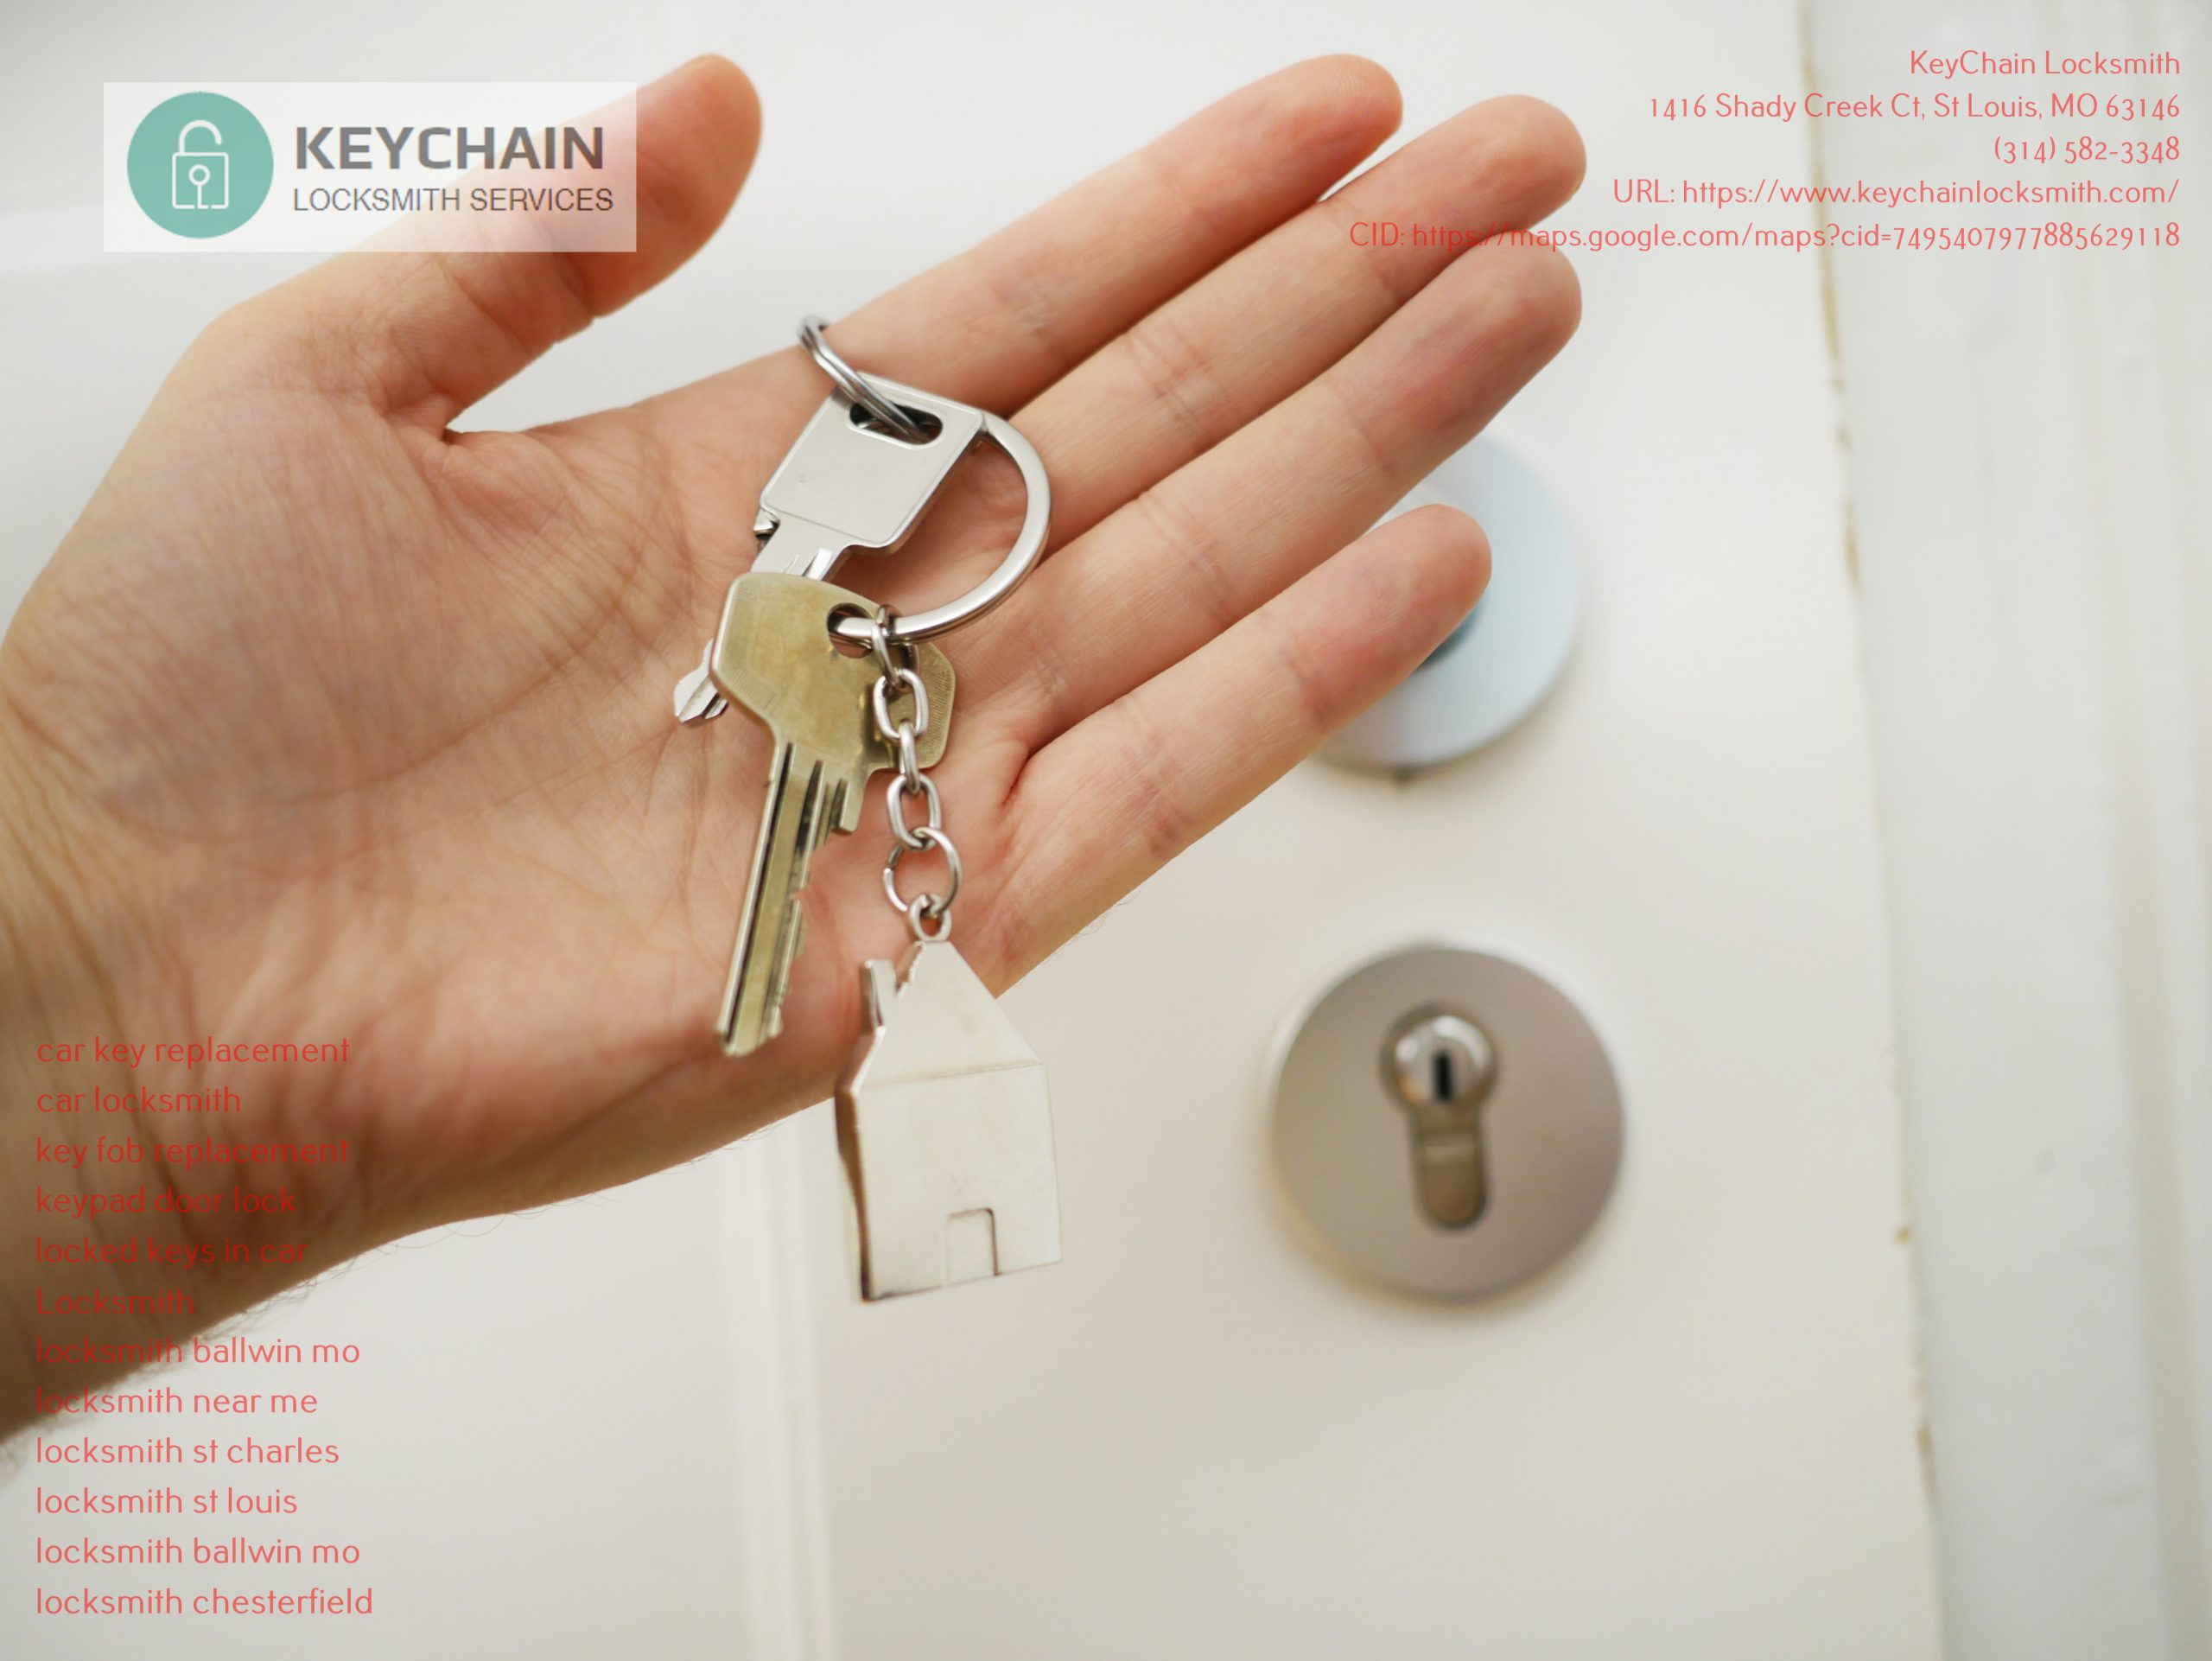 Keychain Locksmith Highlights Why They are The Highly Recommended Emergency Locksmith Service Company 1